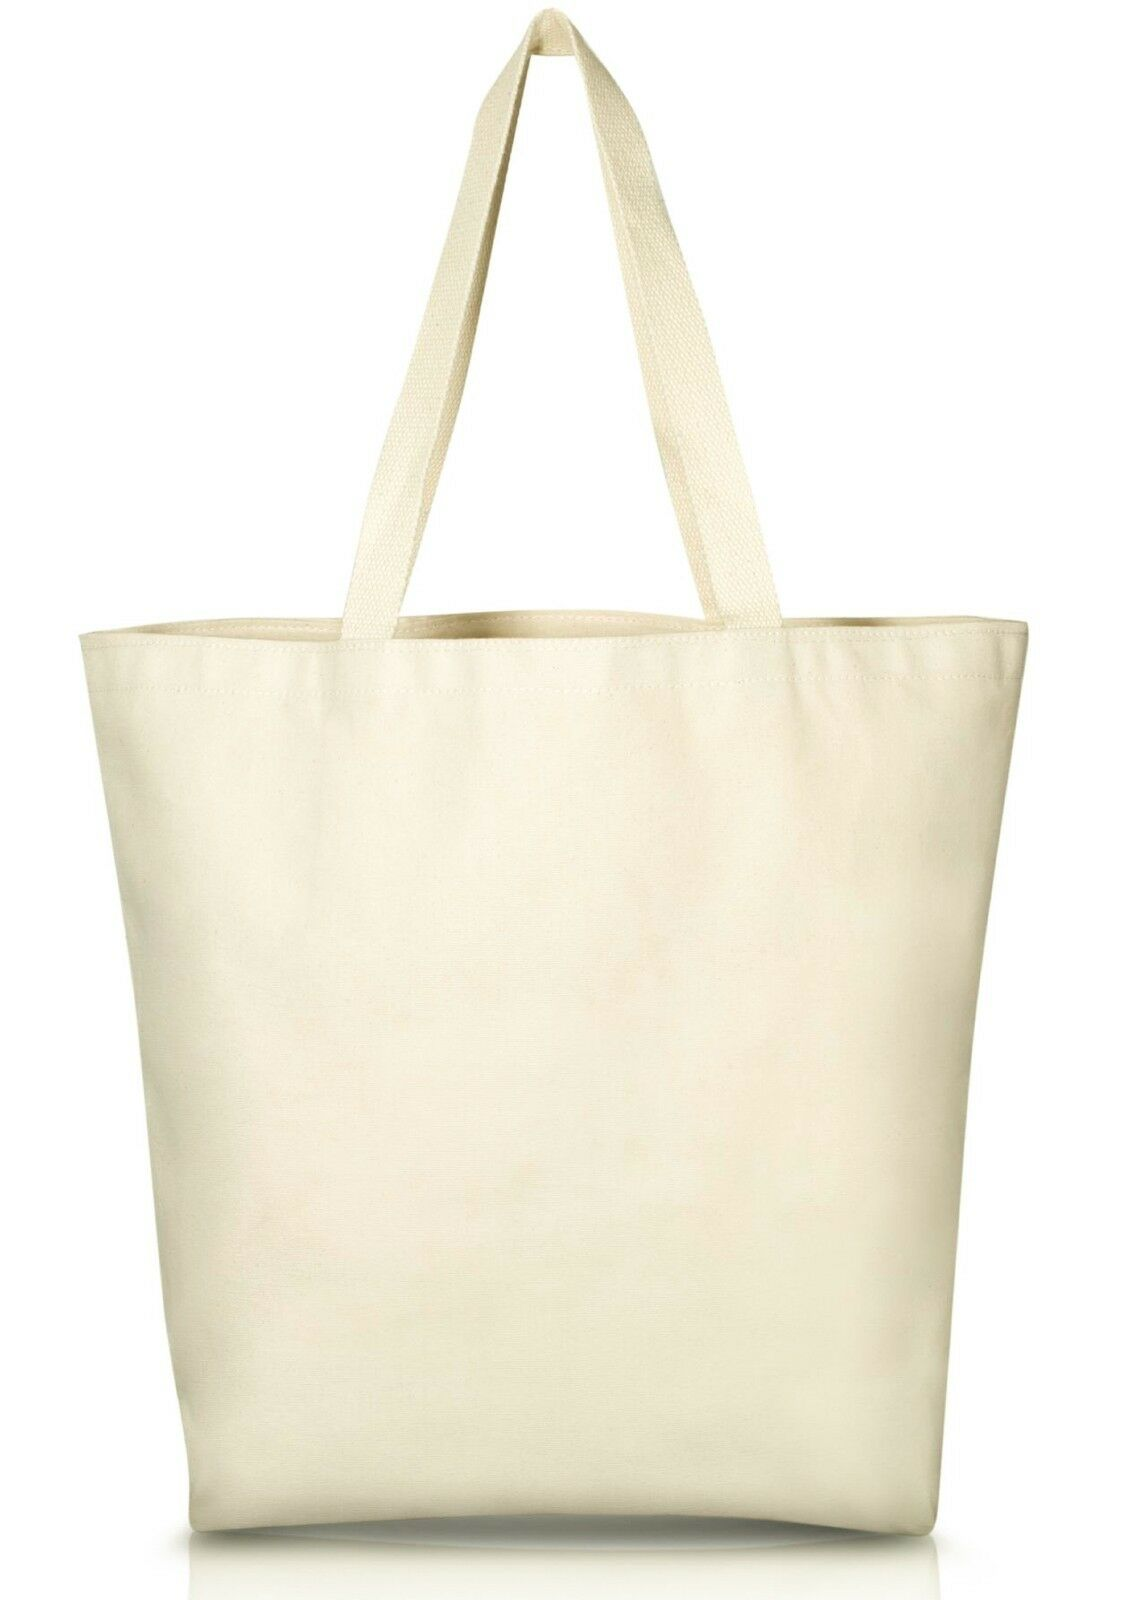 efa578b66da Reusable Grocery Canvas Shopping Bag